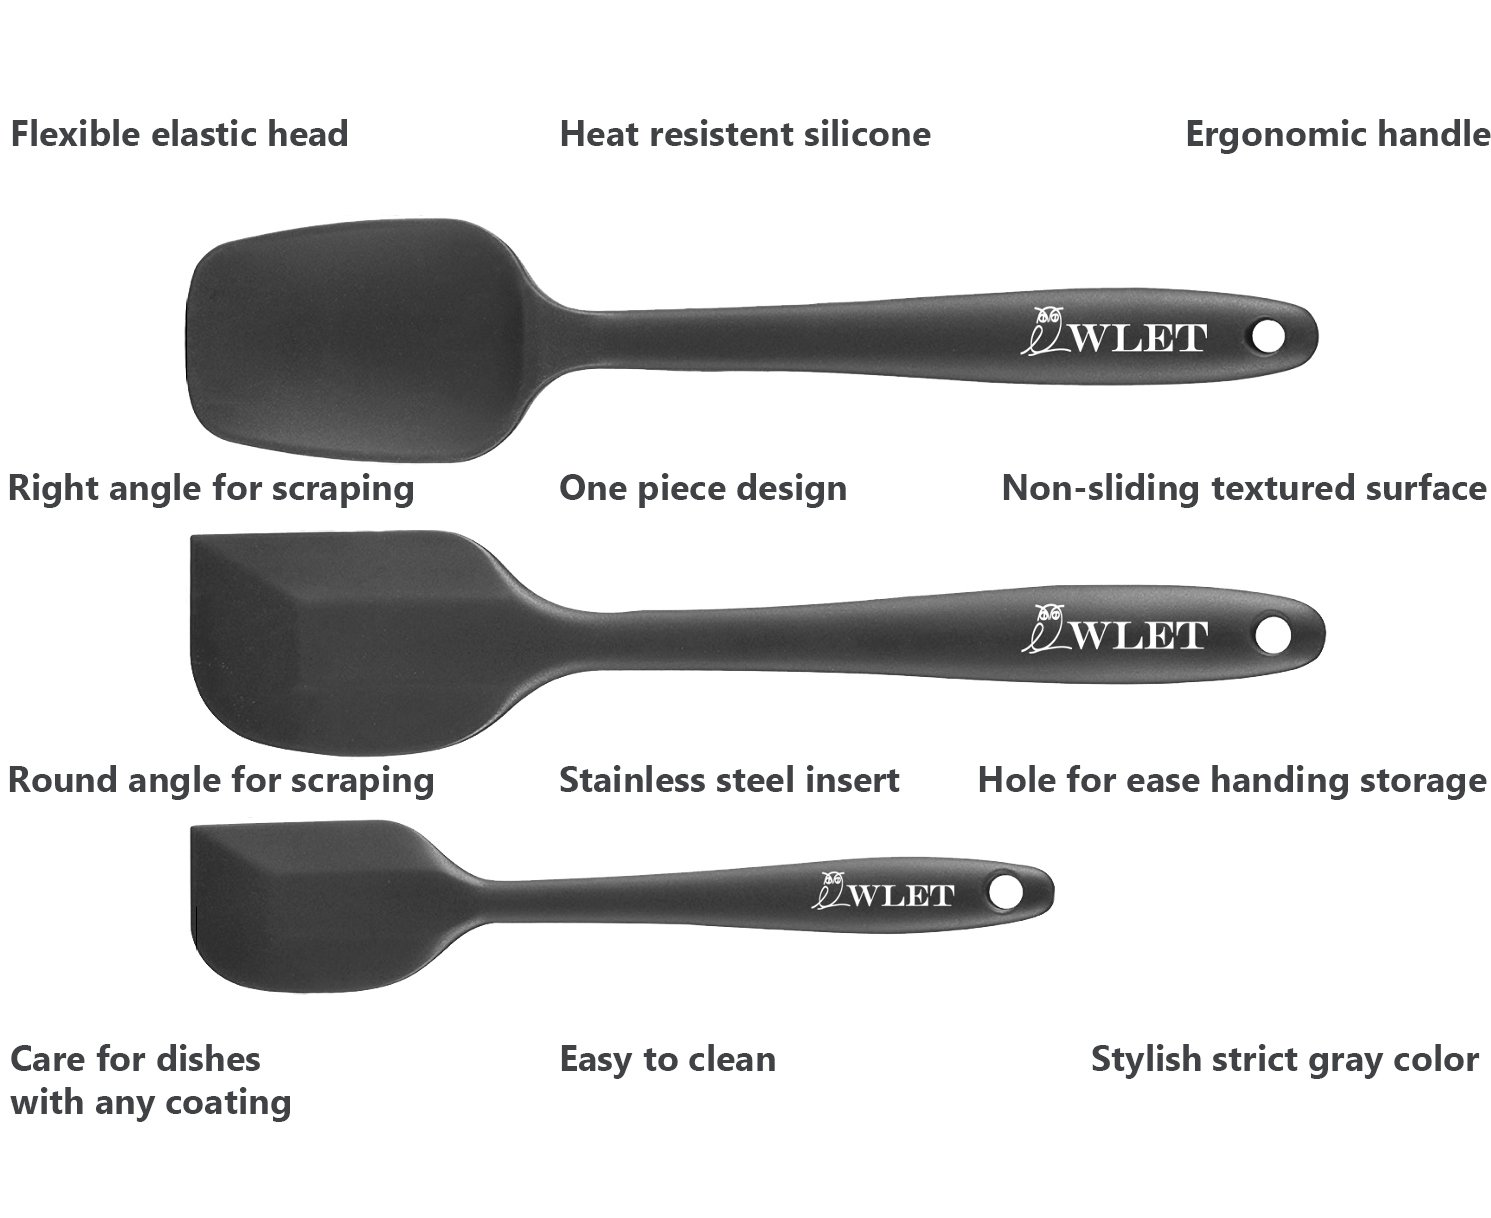 Non-stick Cooking Scrapers-safe Flexible Rubber Small Large Spatula 3-Piece Set Silicone Spatula Spoon Baking Spoon Stainless Steel Insert Spatulas Silicone Heat-resistant Gray Black OWLET OT-100-12192